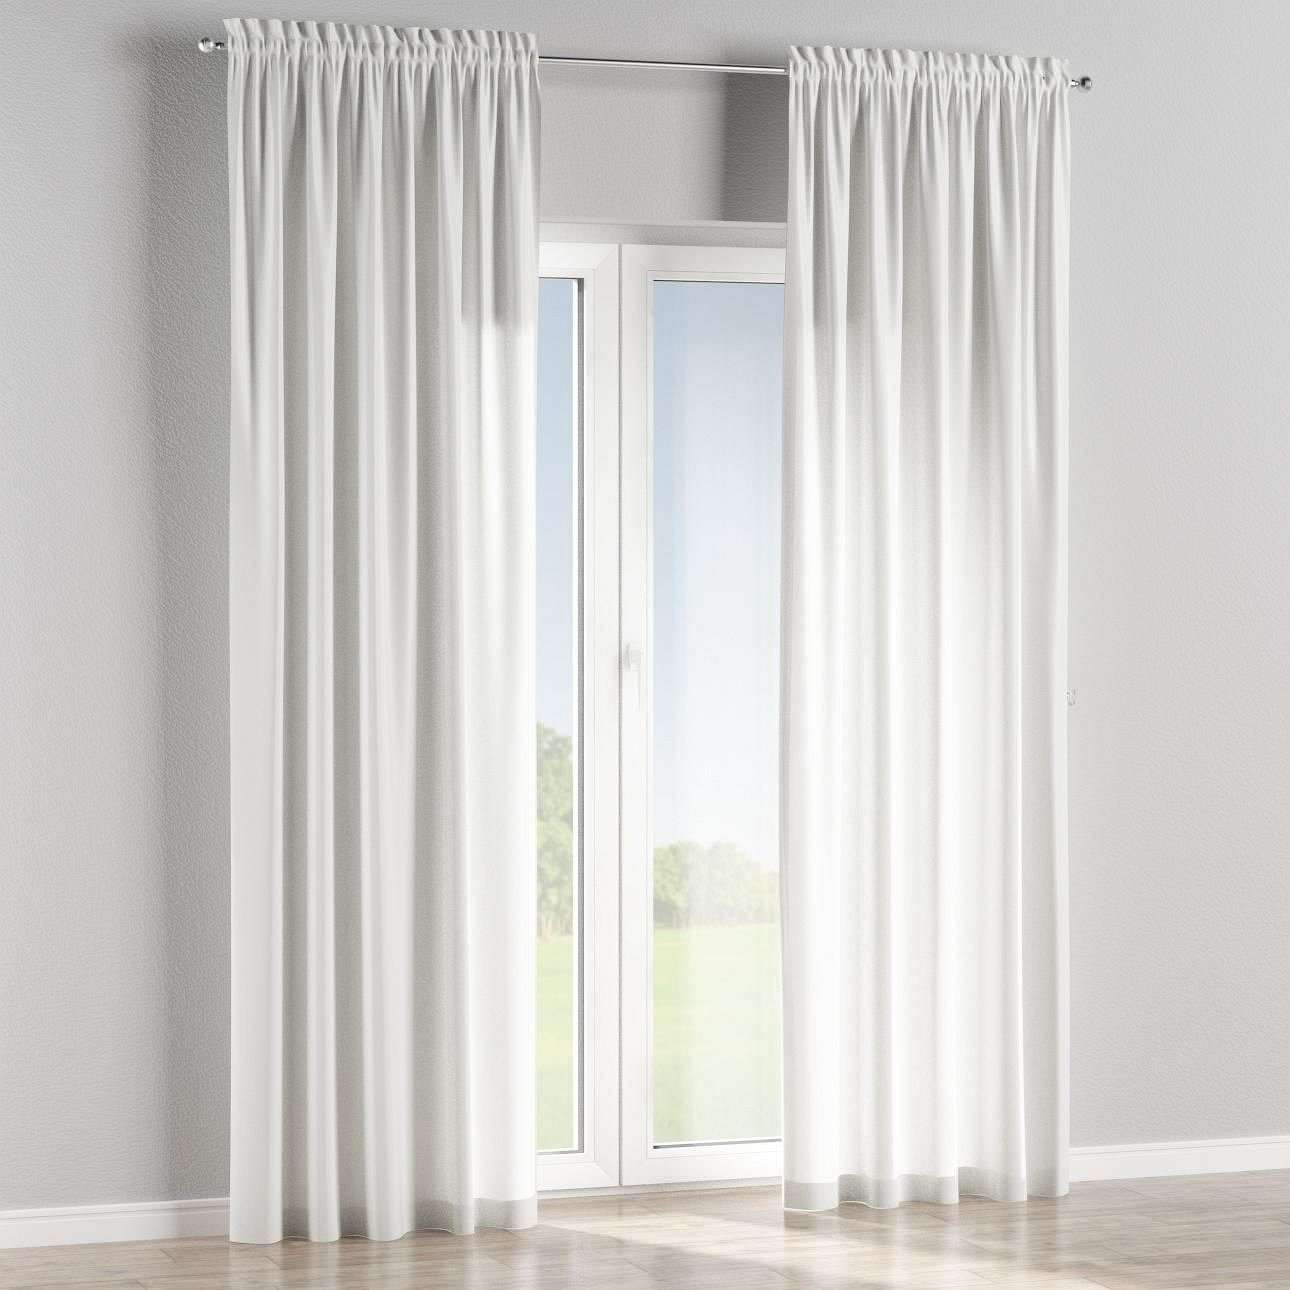 Slot and frill curtains in collection Linen , fabric: 457-09